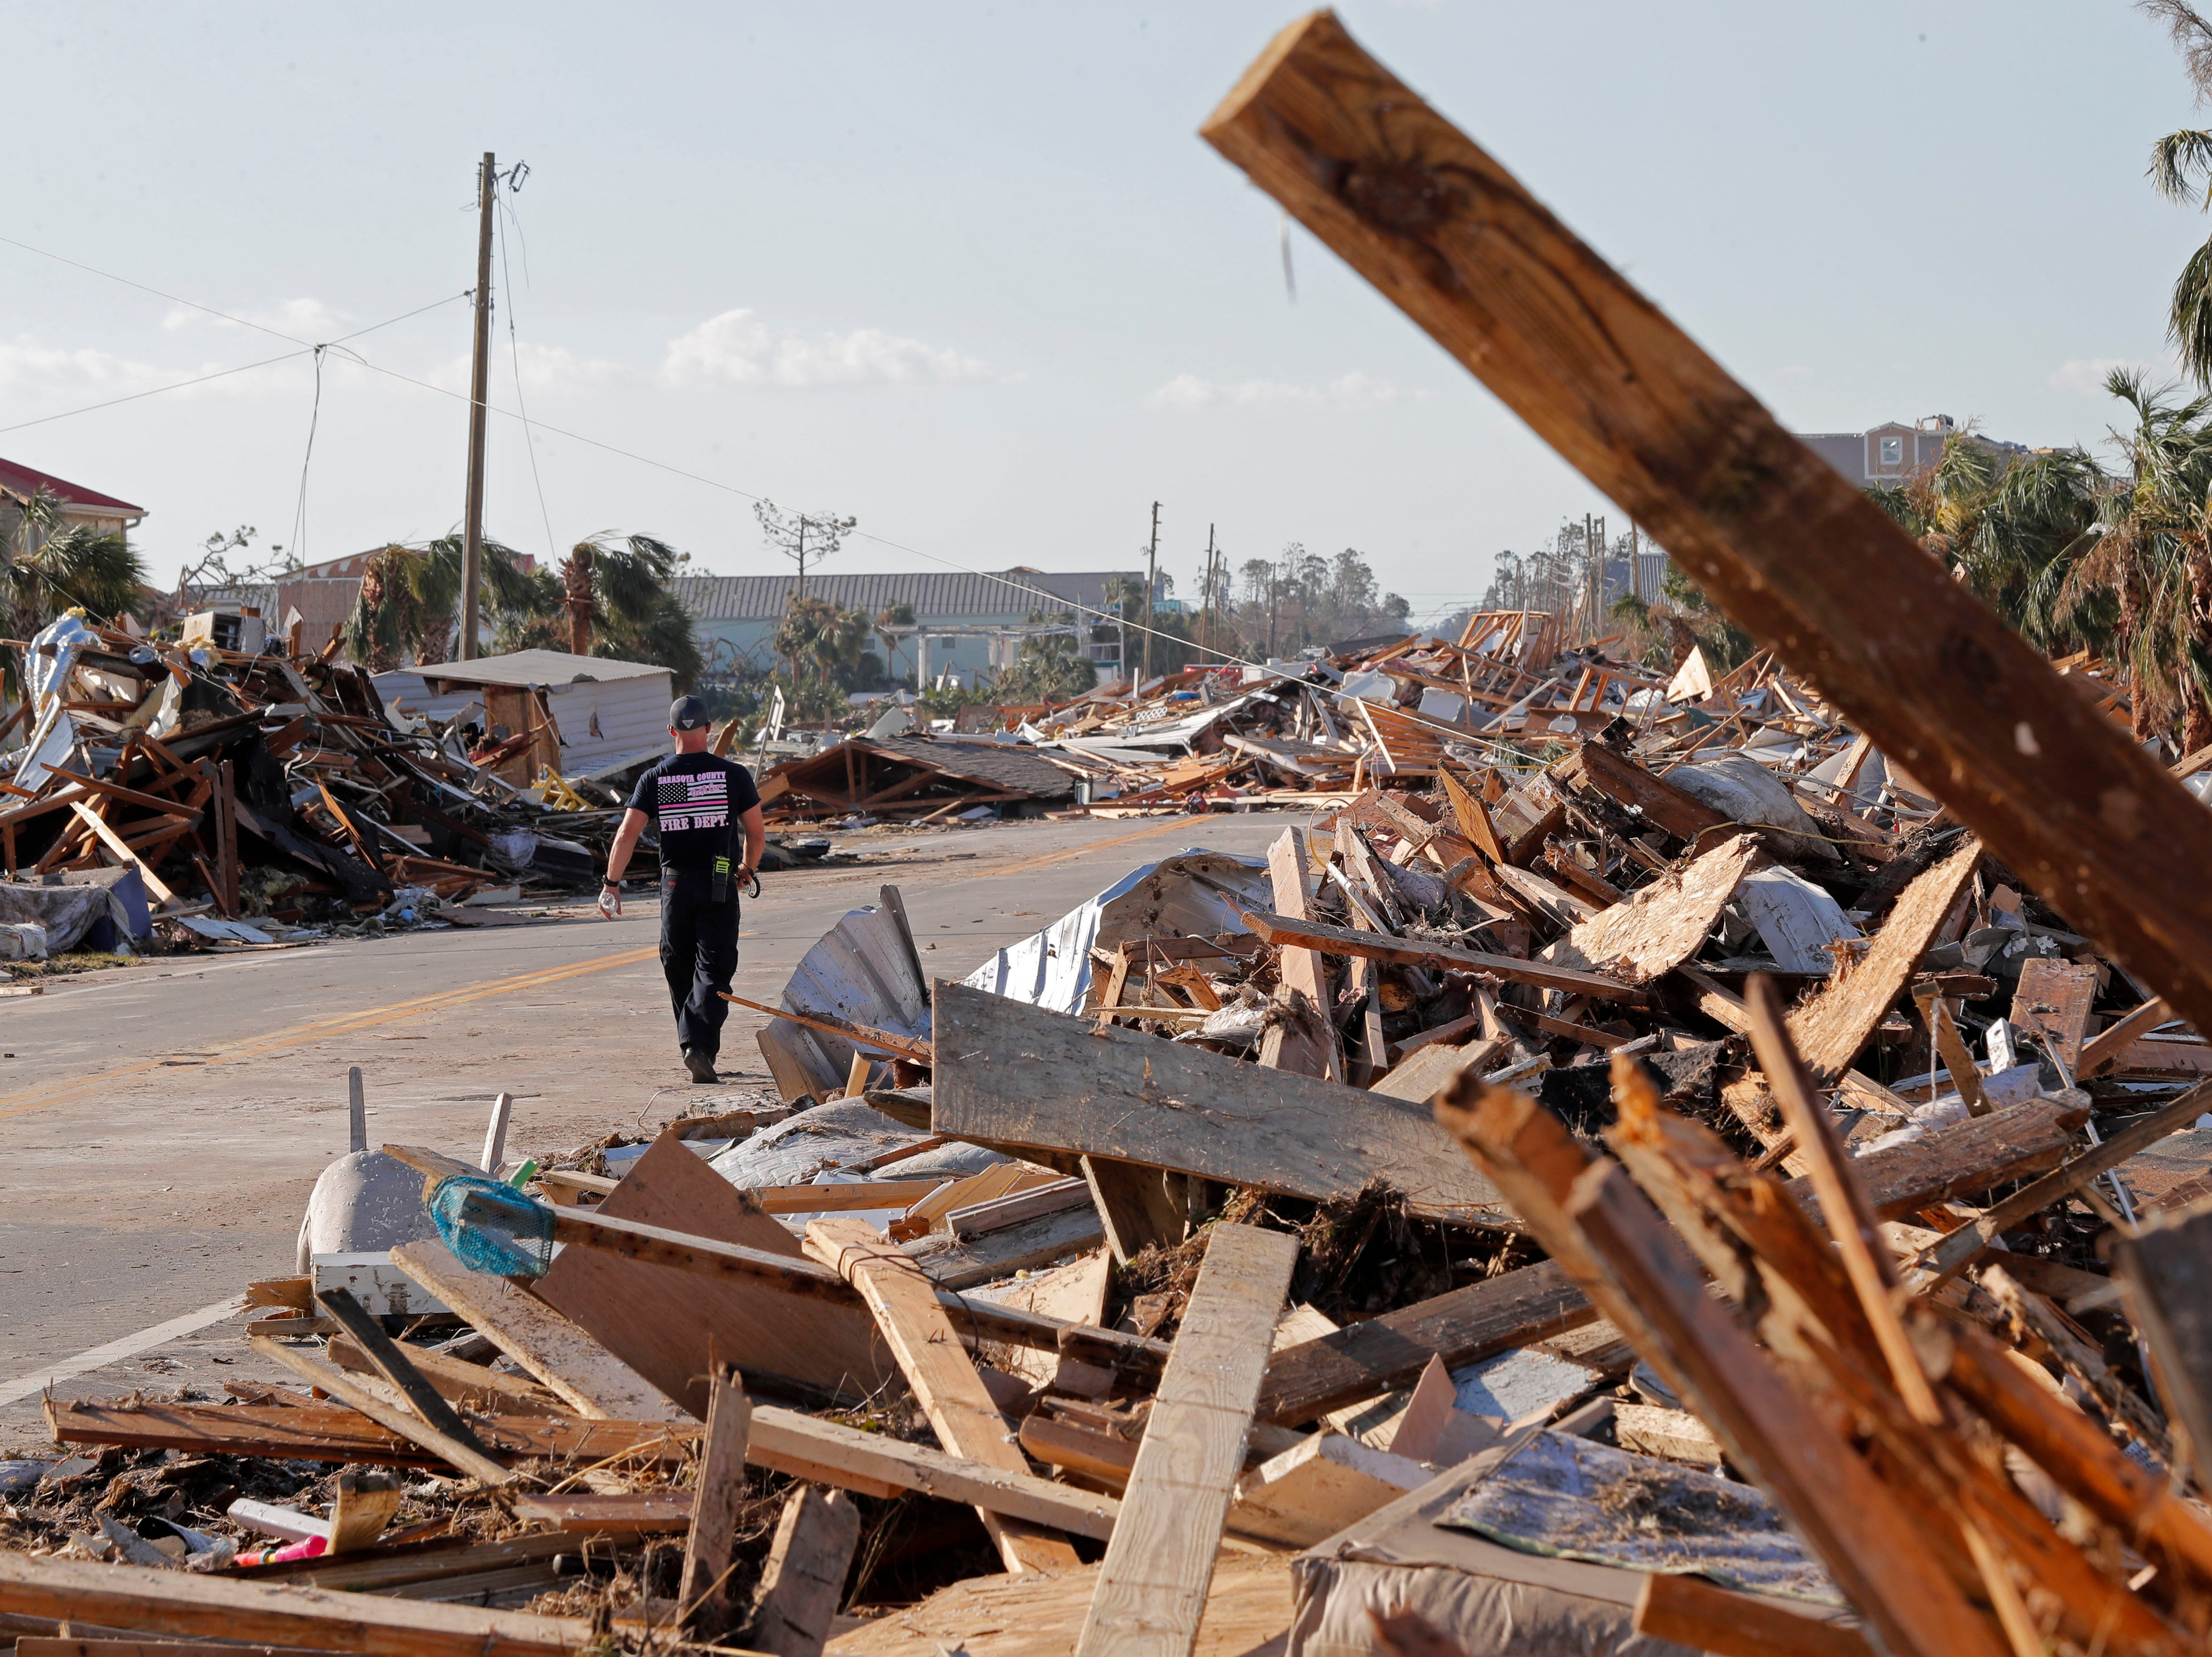 Logan Brisson of the Sarasota County Fire Dept. strike team, walks past debris in the aftermath of Hurricane Michael in Mexico Beach, Fla., Thursday, Oct. 11, 2018. The devastation inflicted by Hurricane Michael came into focus Thursday with rows upon rows of homes found smashed to pieces, and rescue crews began making their way into the stricken areas in hopes of accounting for hundreds of people who may have stayed behind.